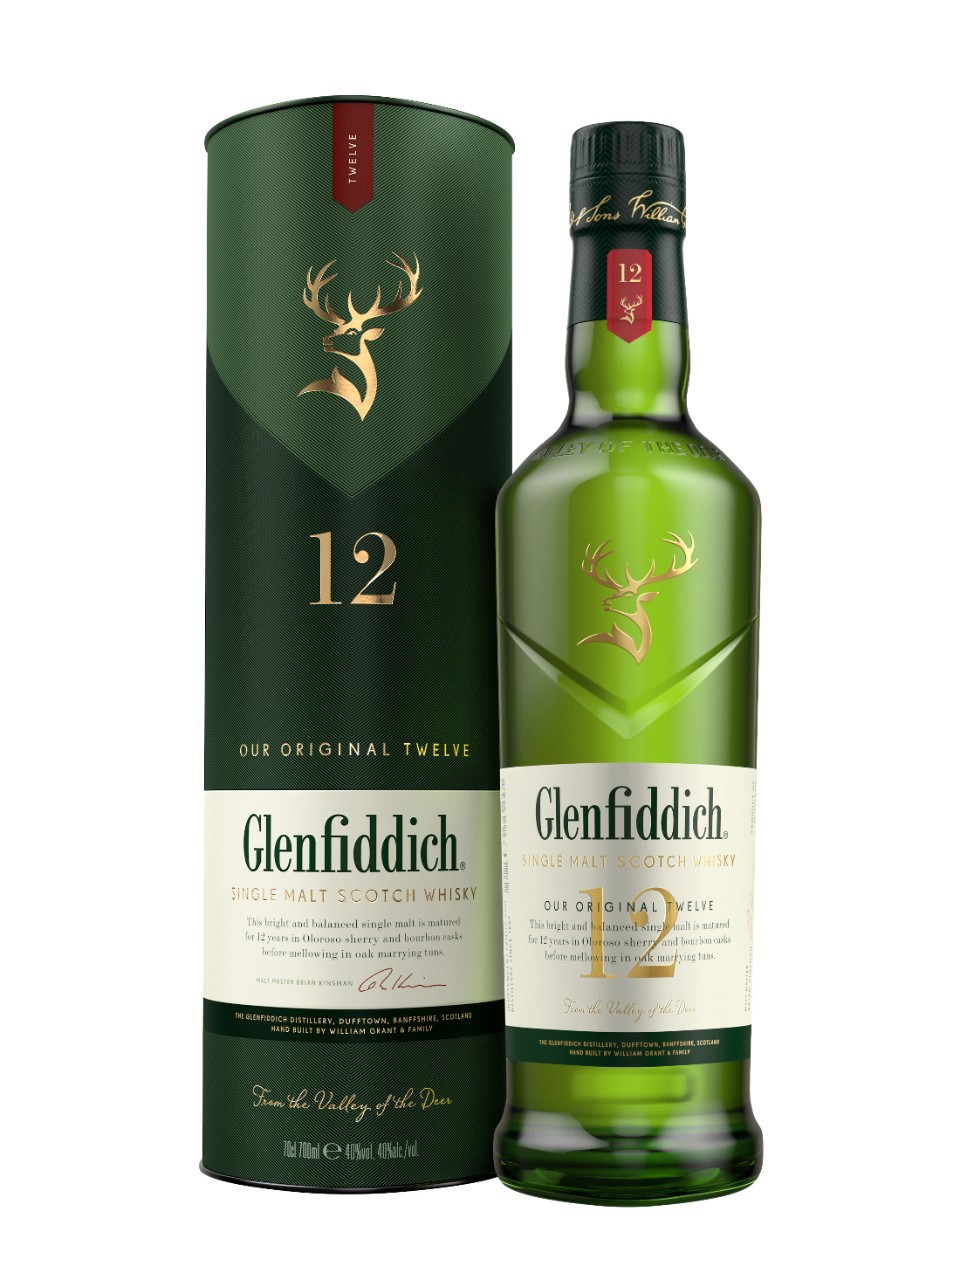 Image for Glenfiddich 12 Year Old Single Malt Scotch Whisky from LCBO